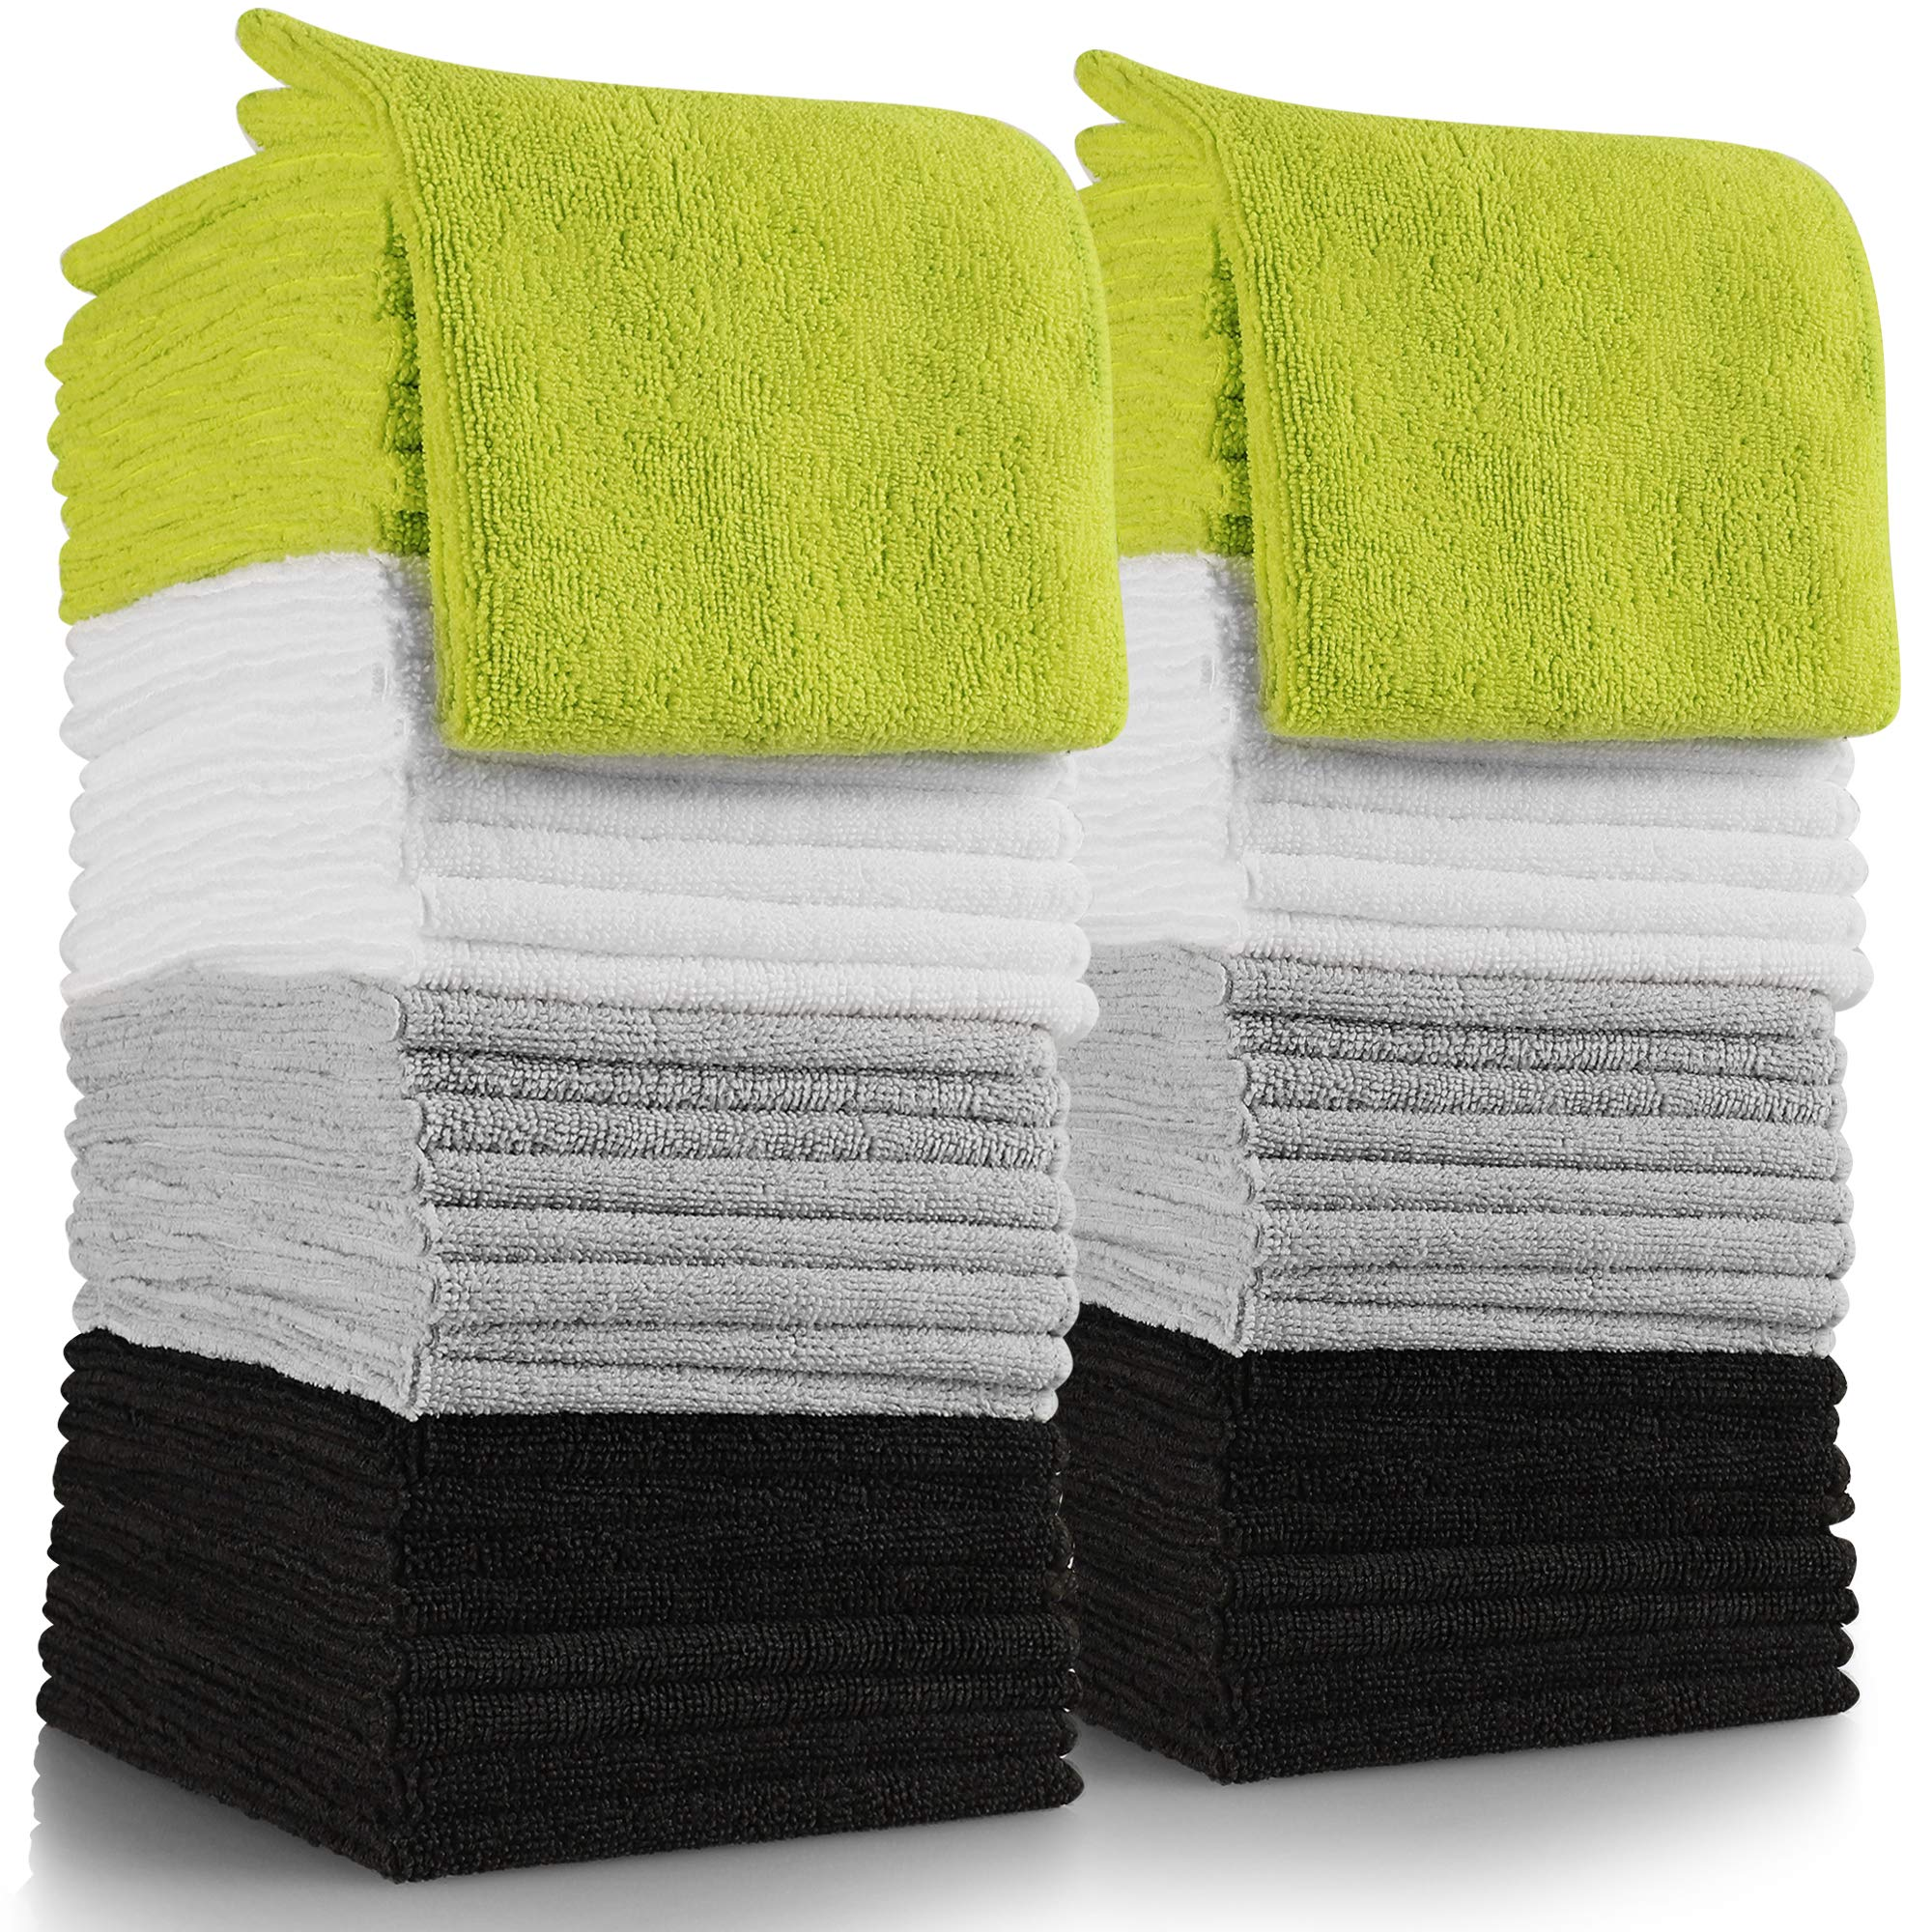 OxGord Microfiber Cleaning Cloth 64pc Pack Bulk - Duster Rag Sponge for Car Wash Auto Care Thick Large for Glasses Kitchen Dish